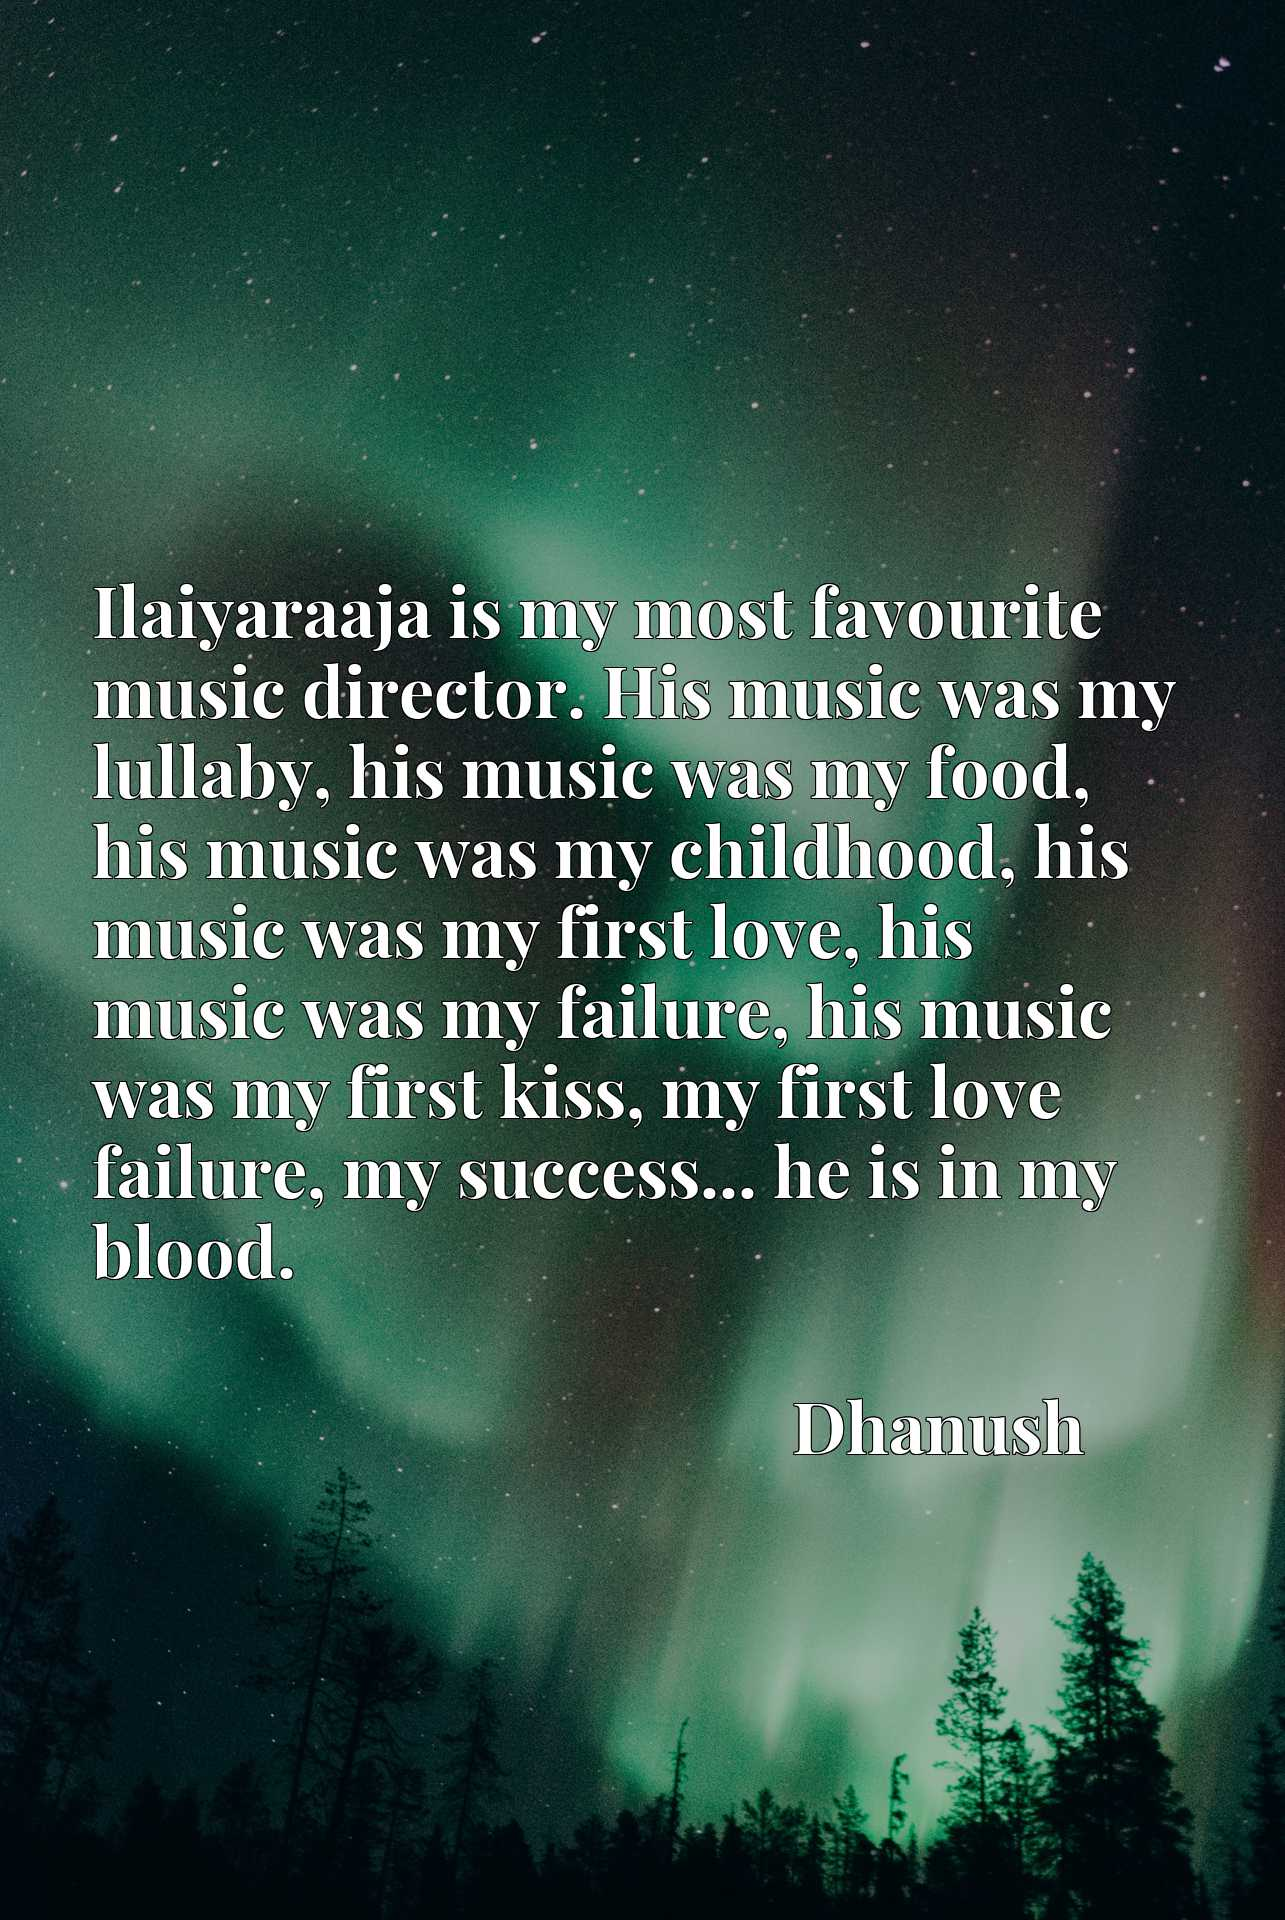 Ilaiyaraaja is my most favourite music director. His music was my lullaby, his music was my food, his music was my childhood, his music was my first love, his music was my failure, his music was my first kiss, my first love failure, my success... he is in my blood.